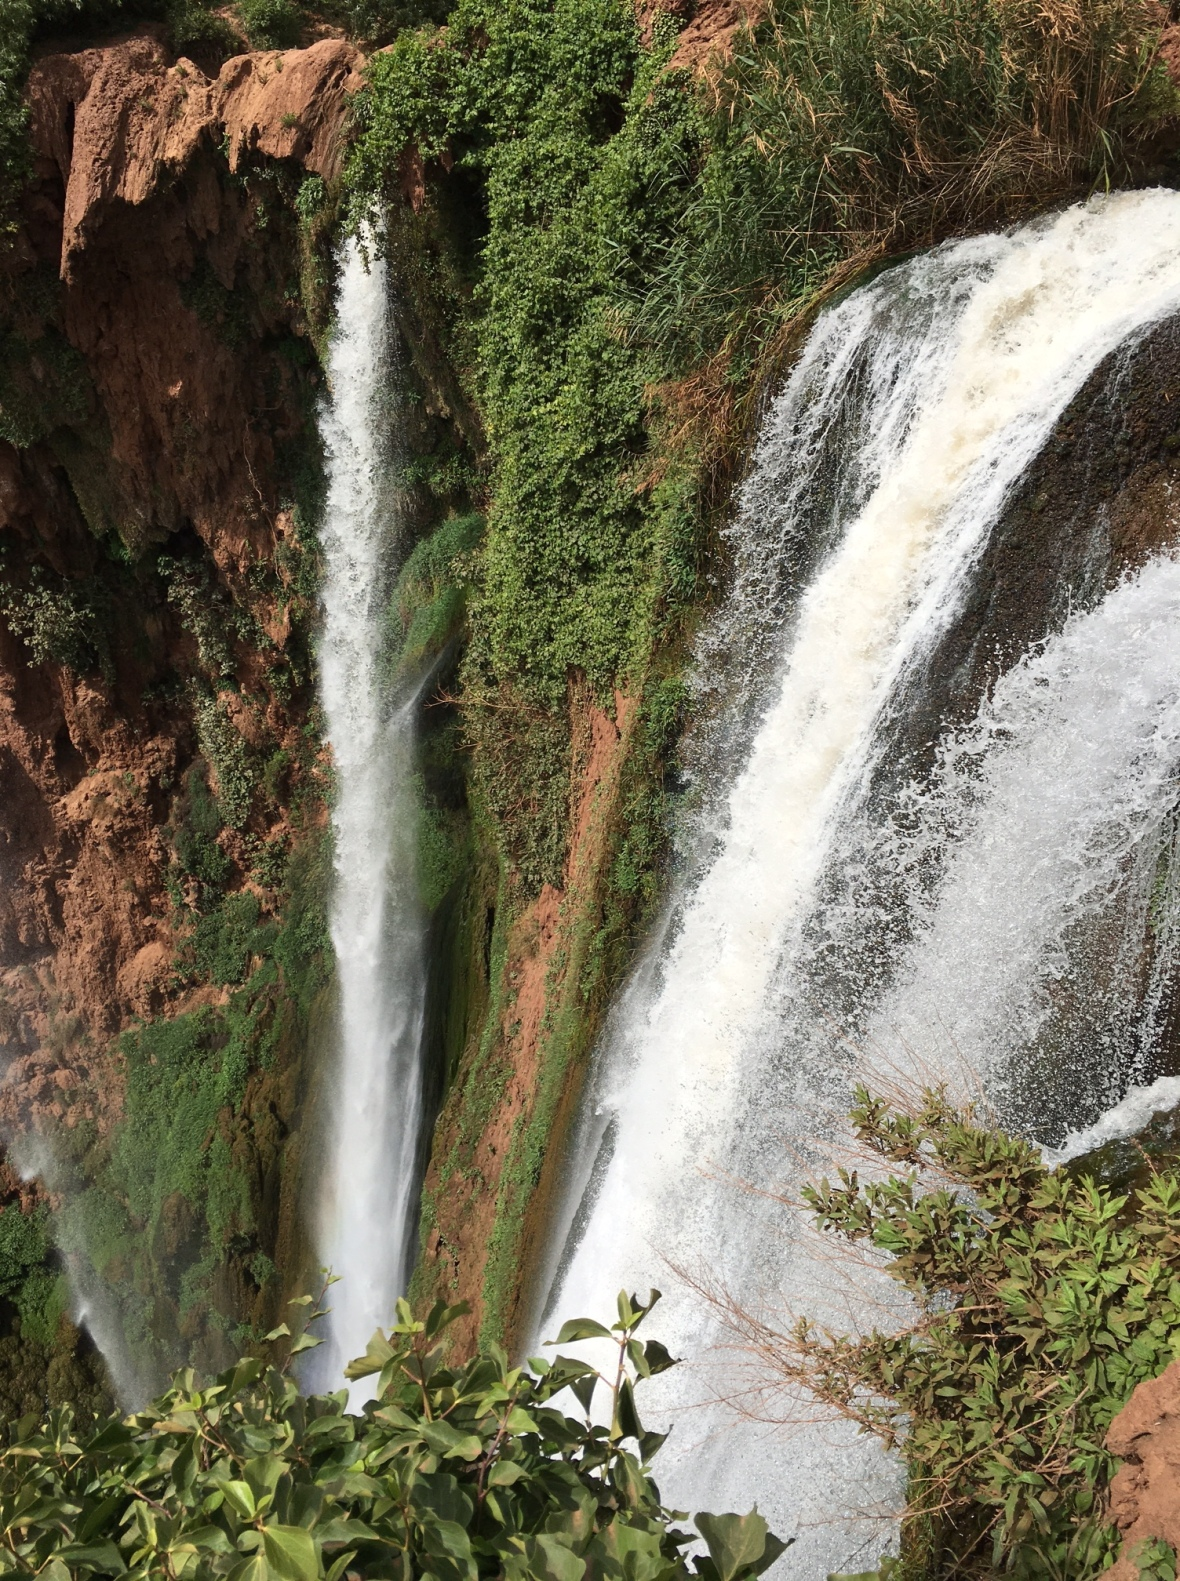 Top Of The Waterfall, Cascades D'Ouzoud, Morocco